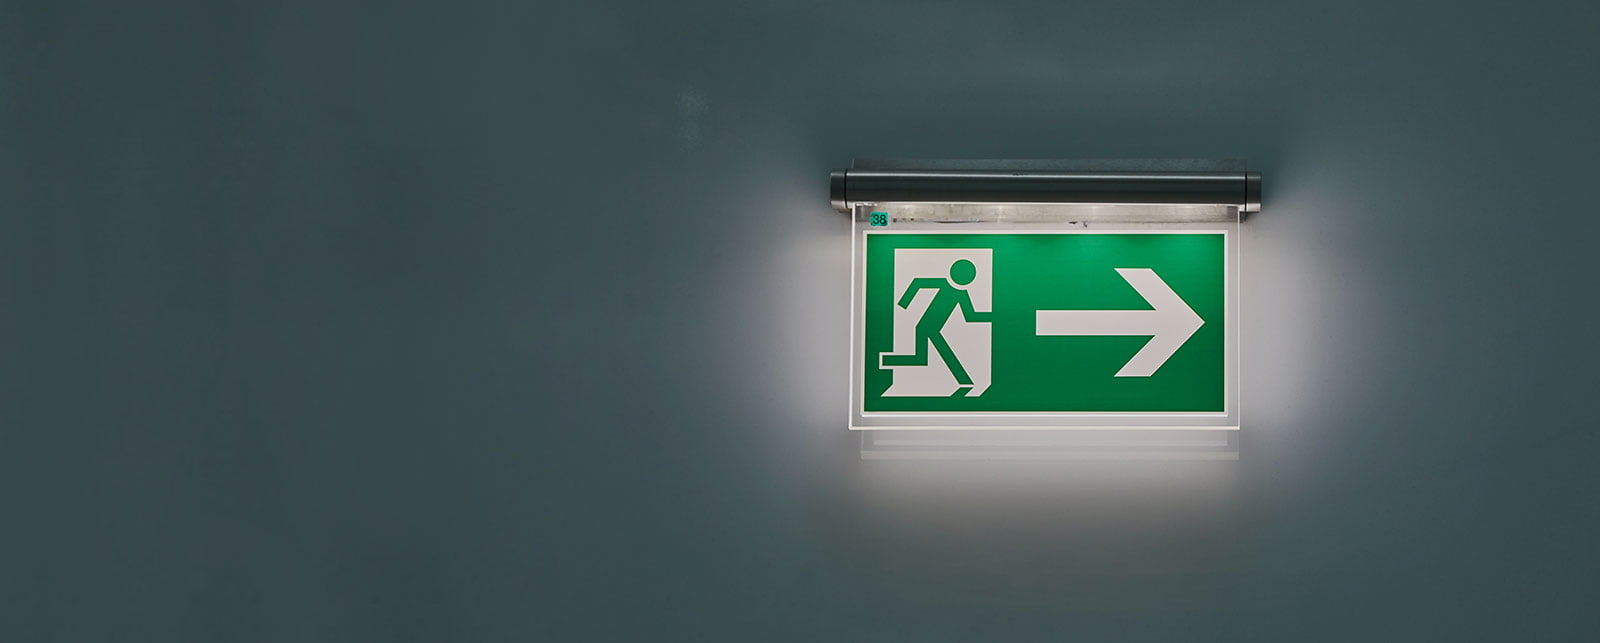 fire alarm exit sign slider image